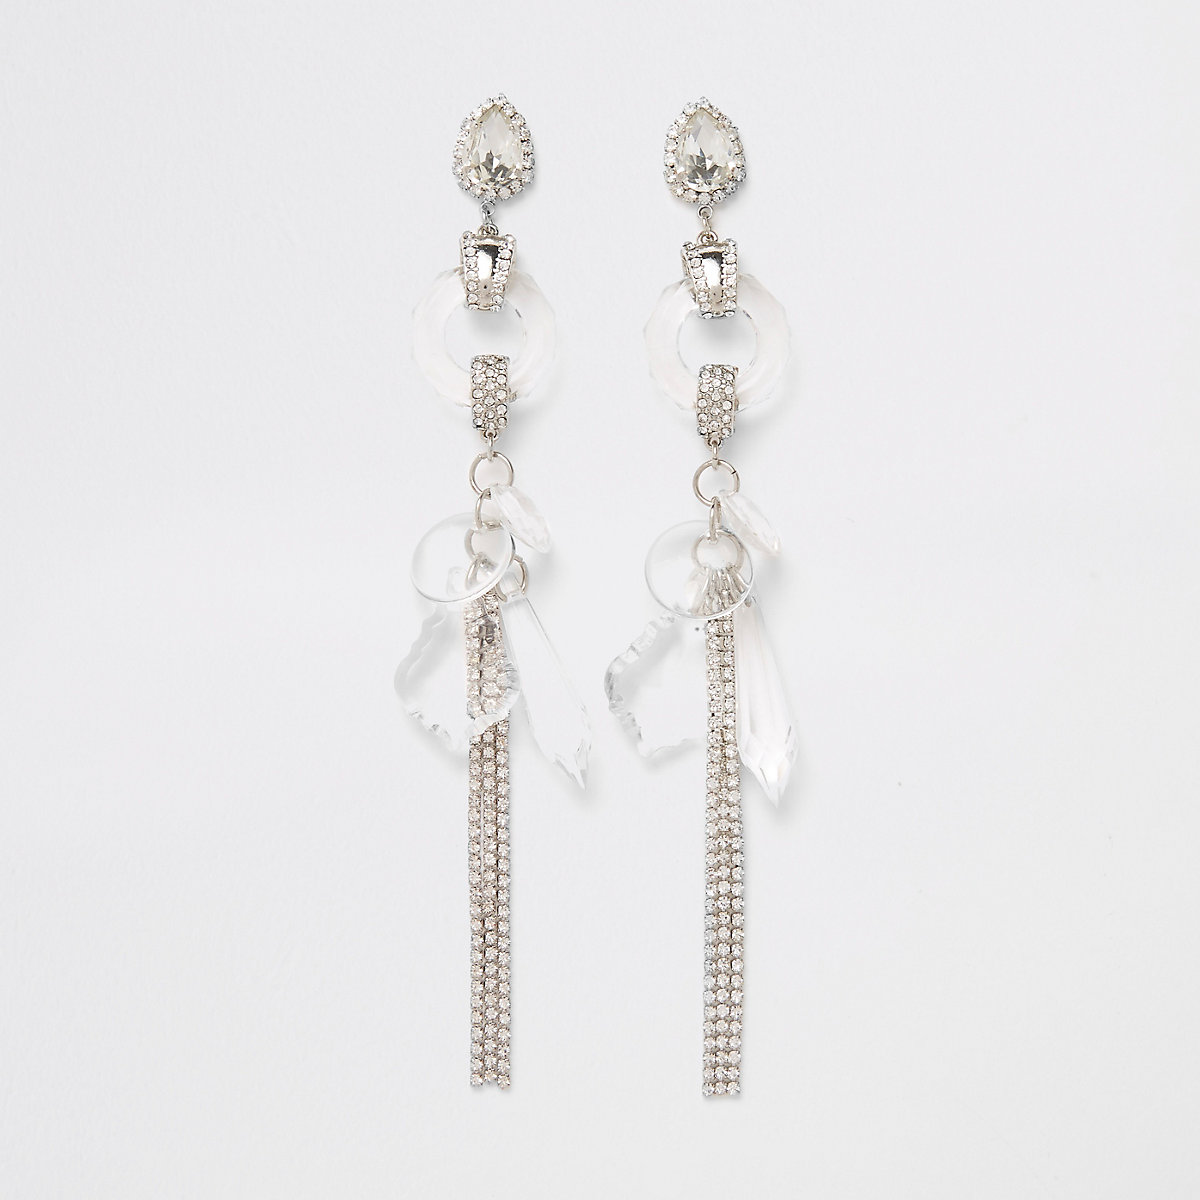 Silver tone rhinestone and jewel drop earrings